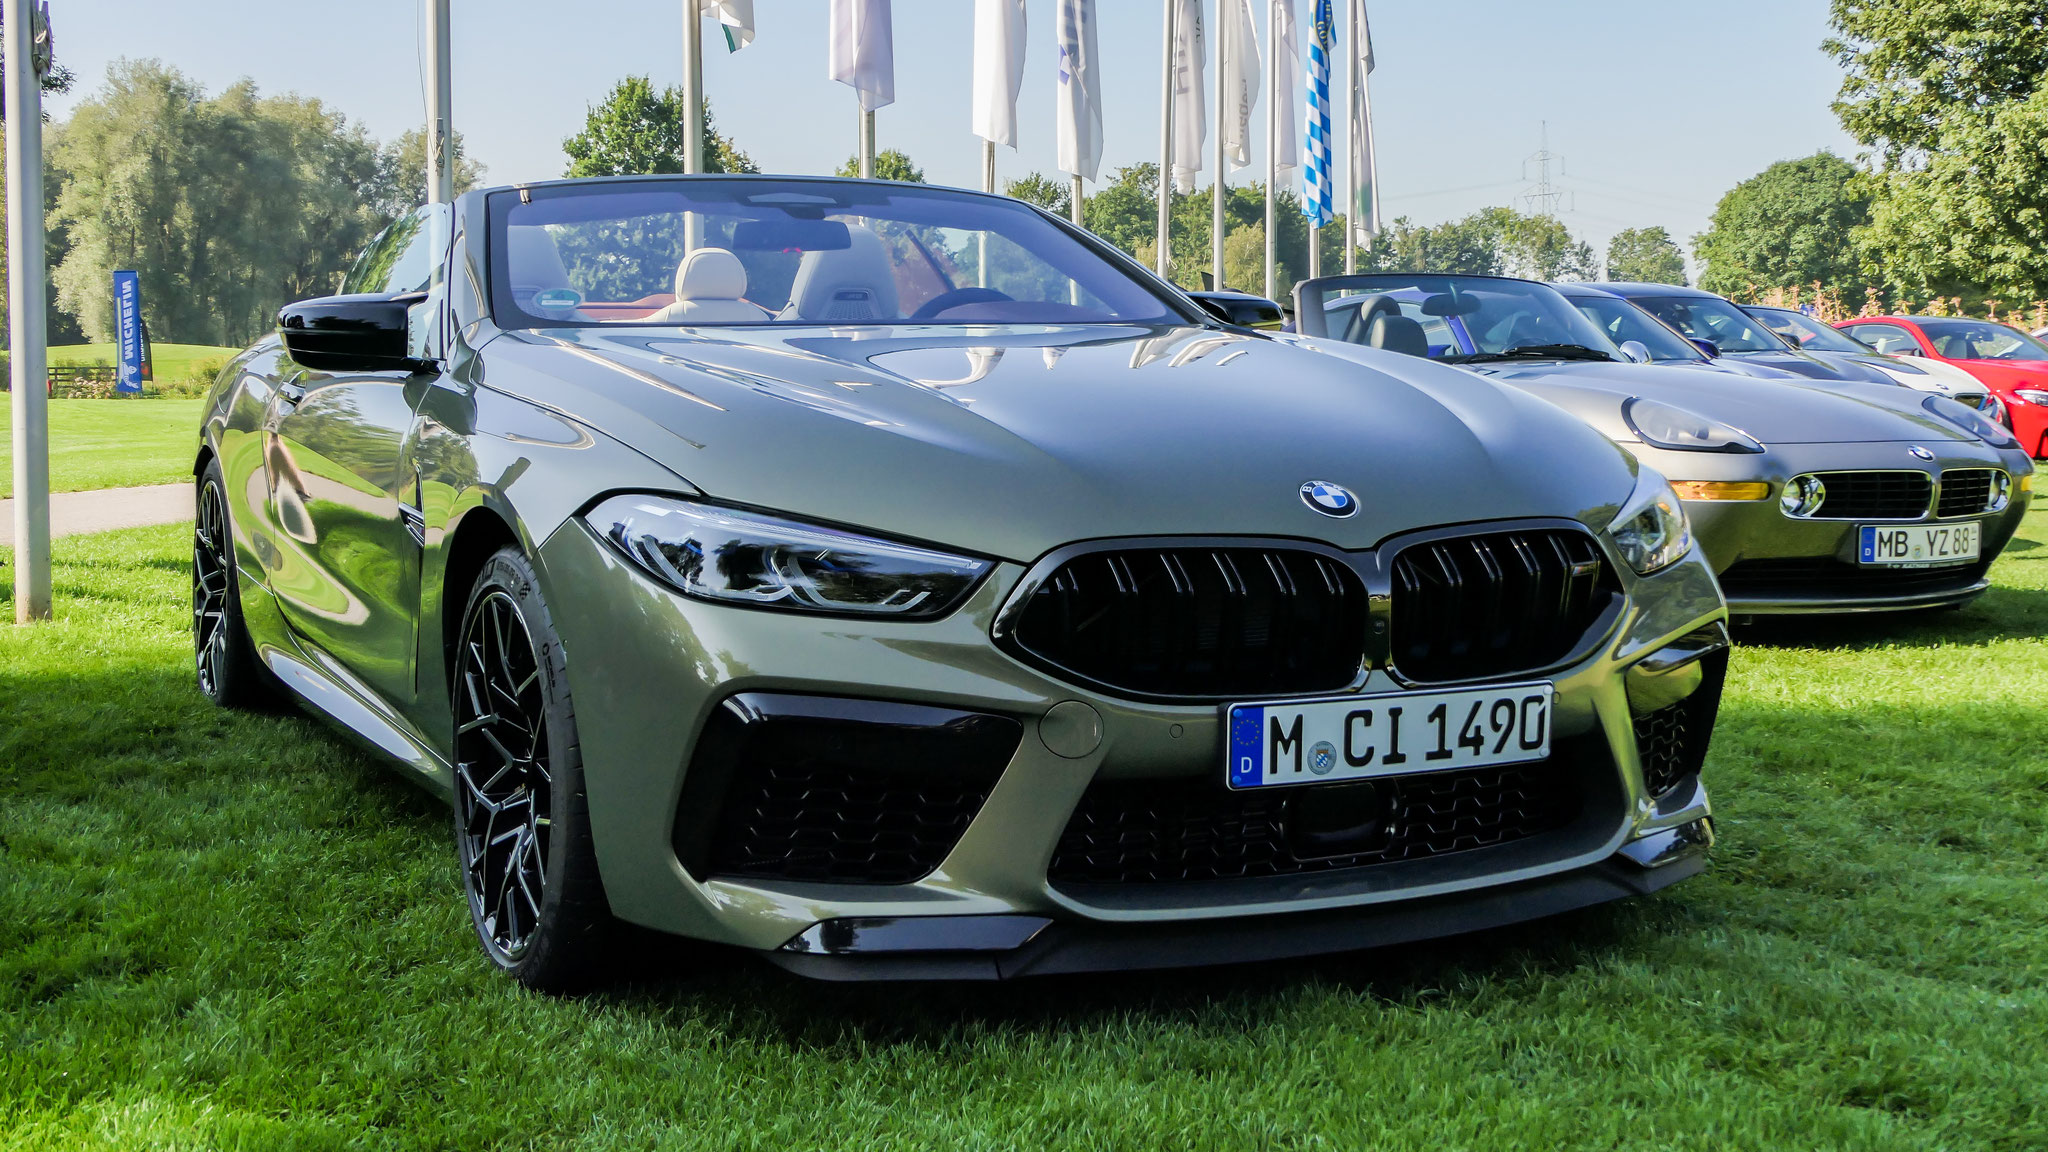 BMW M8 Competition Cabrio - M-CI-1490